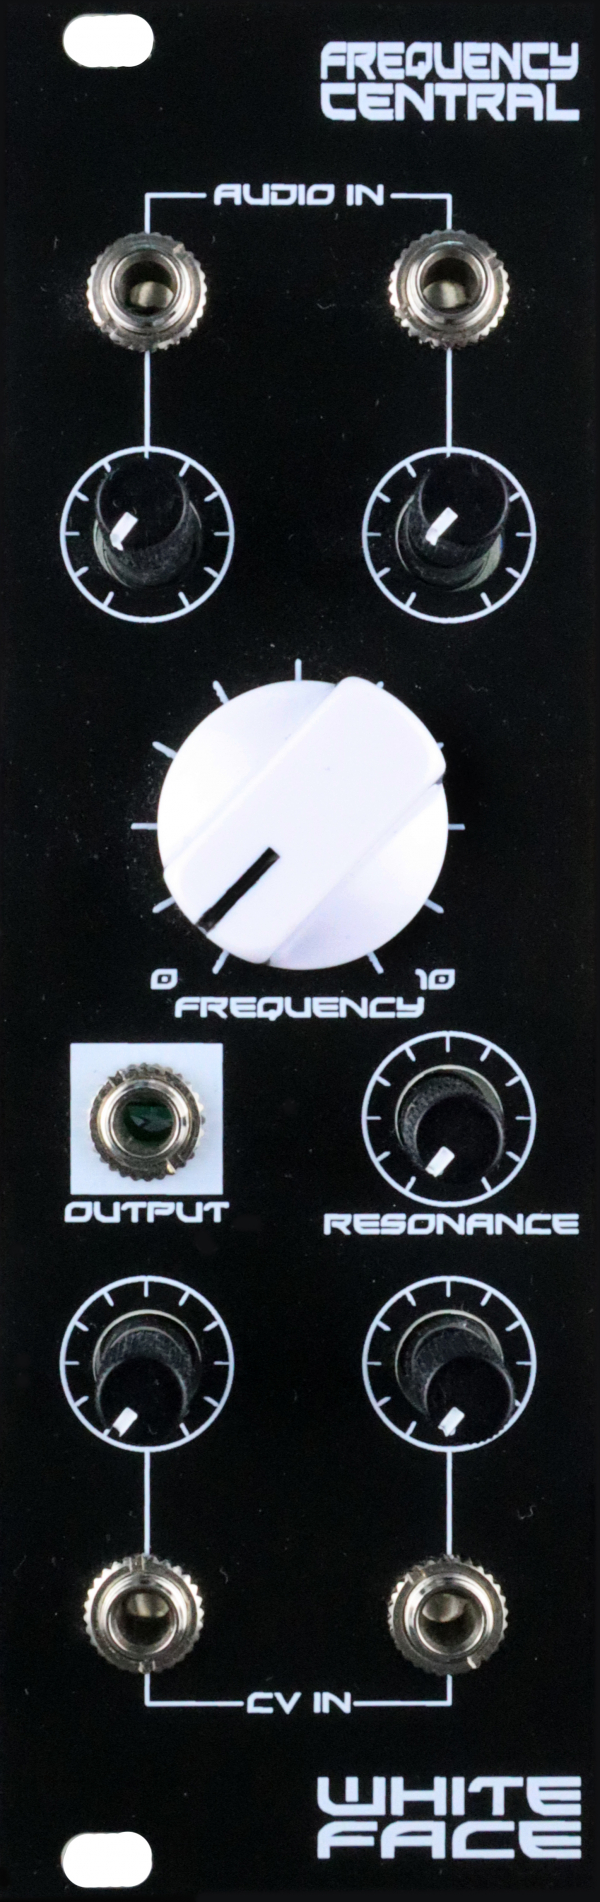 Assembled Frequency Central Whiteface